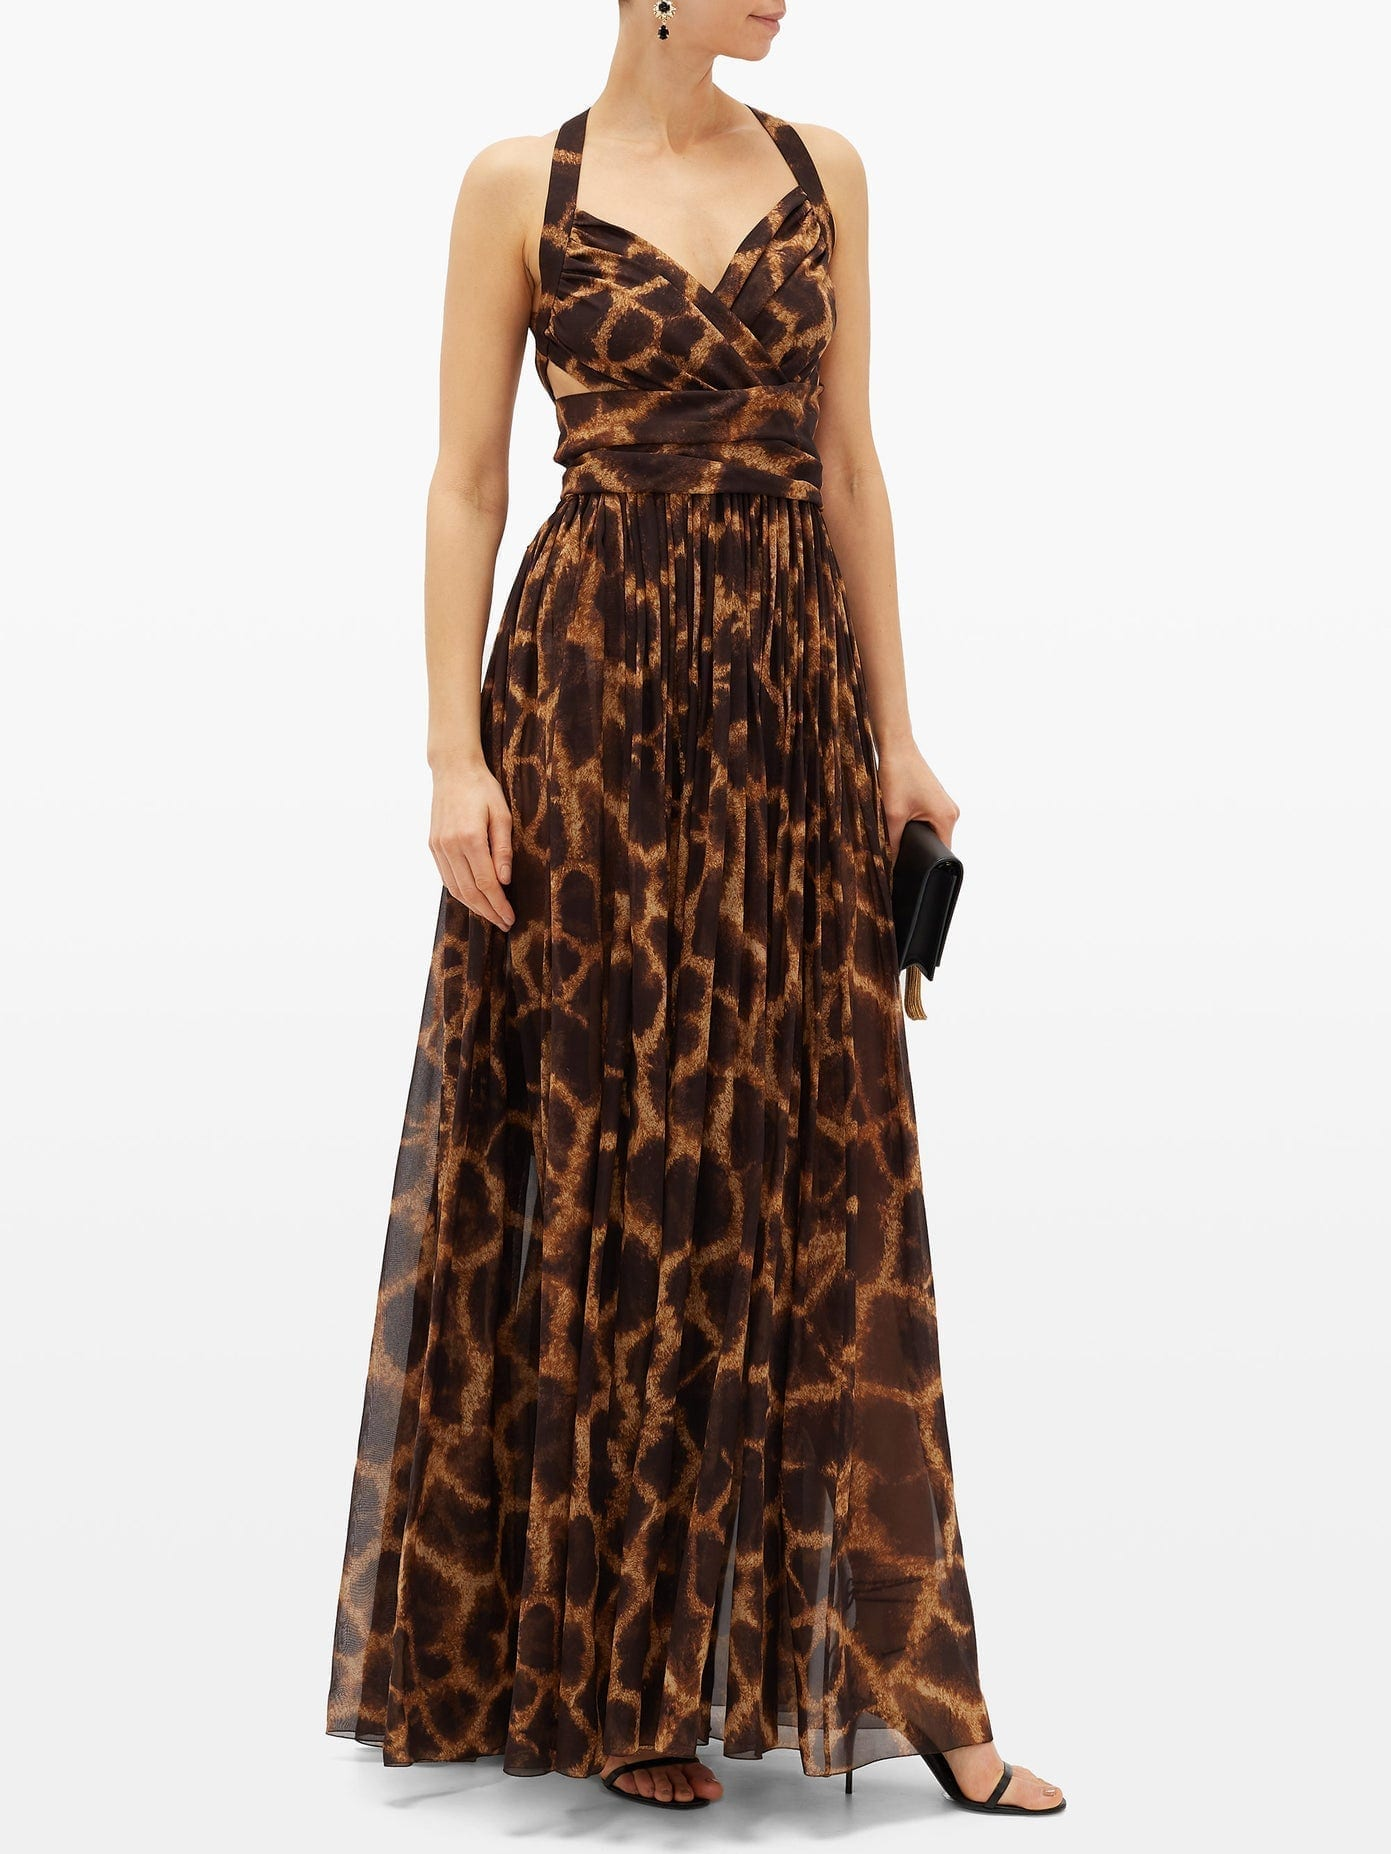 DOLCE & GABBANA Giraffe-print Silk-georgette Dress